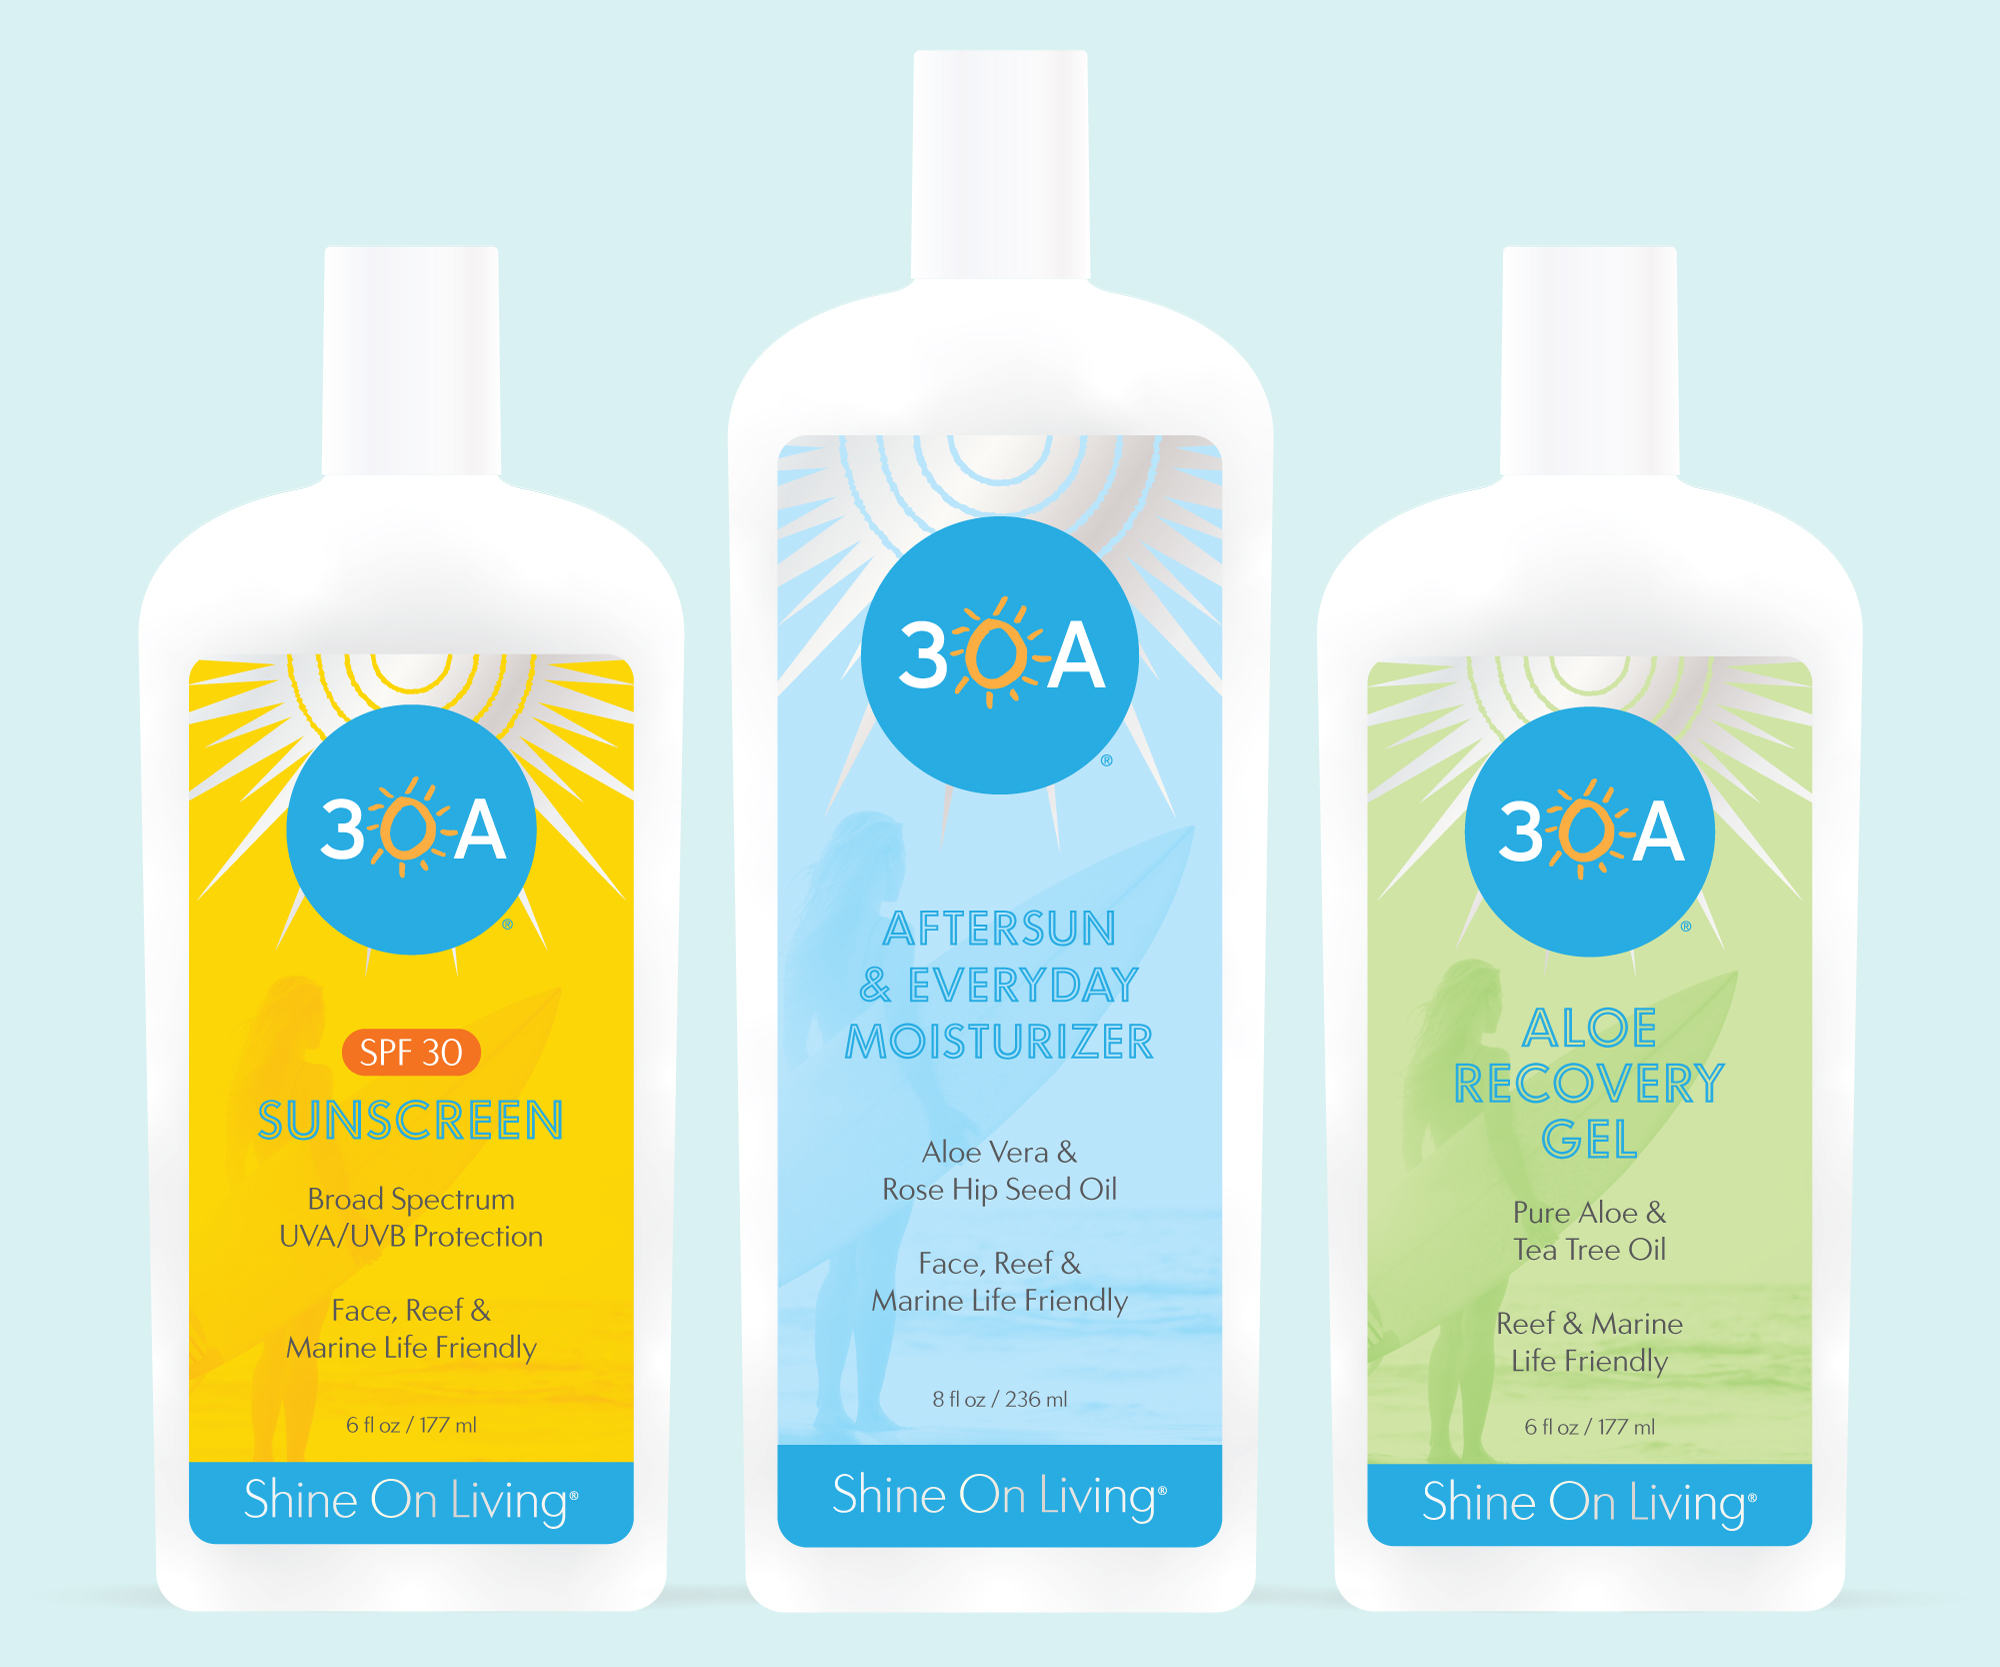 30A Products by Shine On Living - SPF 30 Sunscreen, Aftersun & Everyday Moisturizer, Aloe Recovery Gel